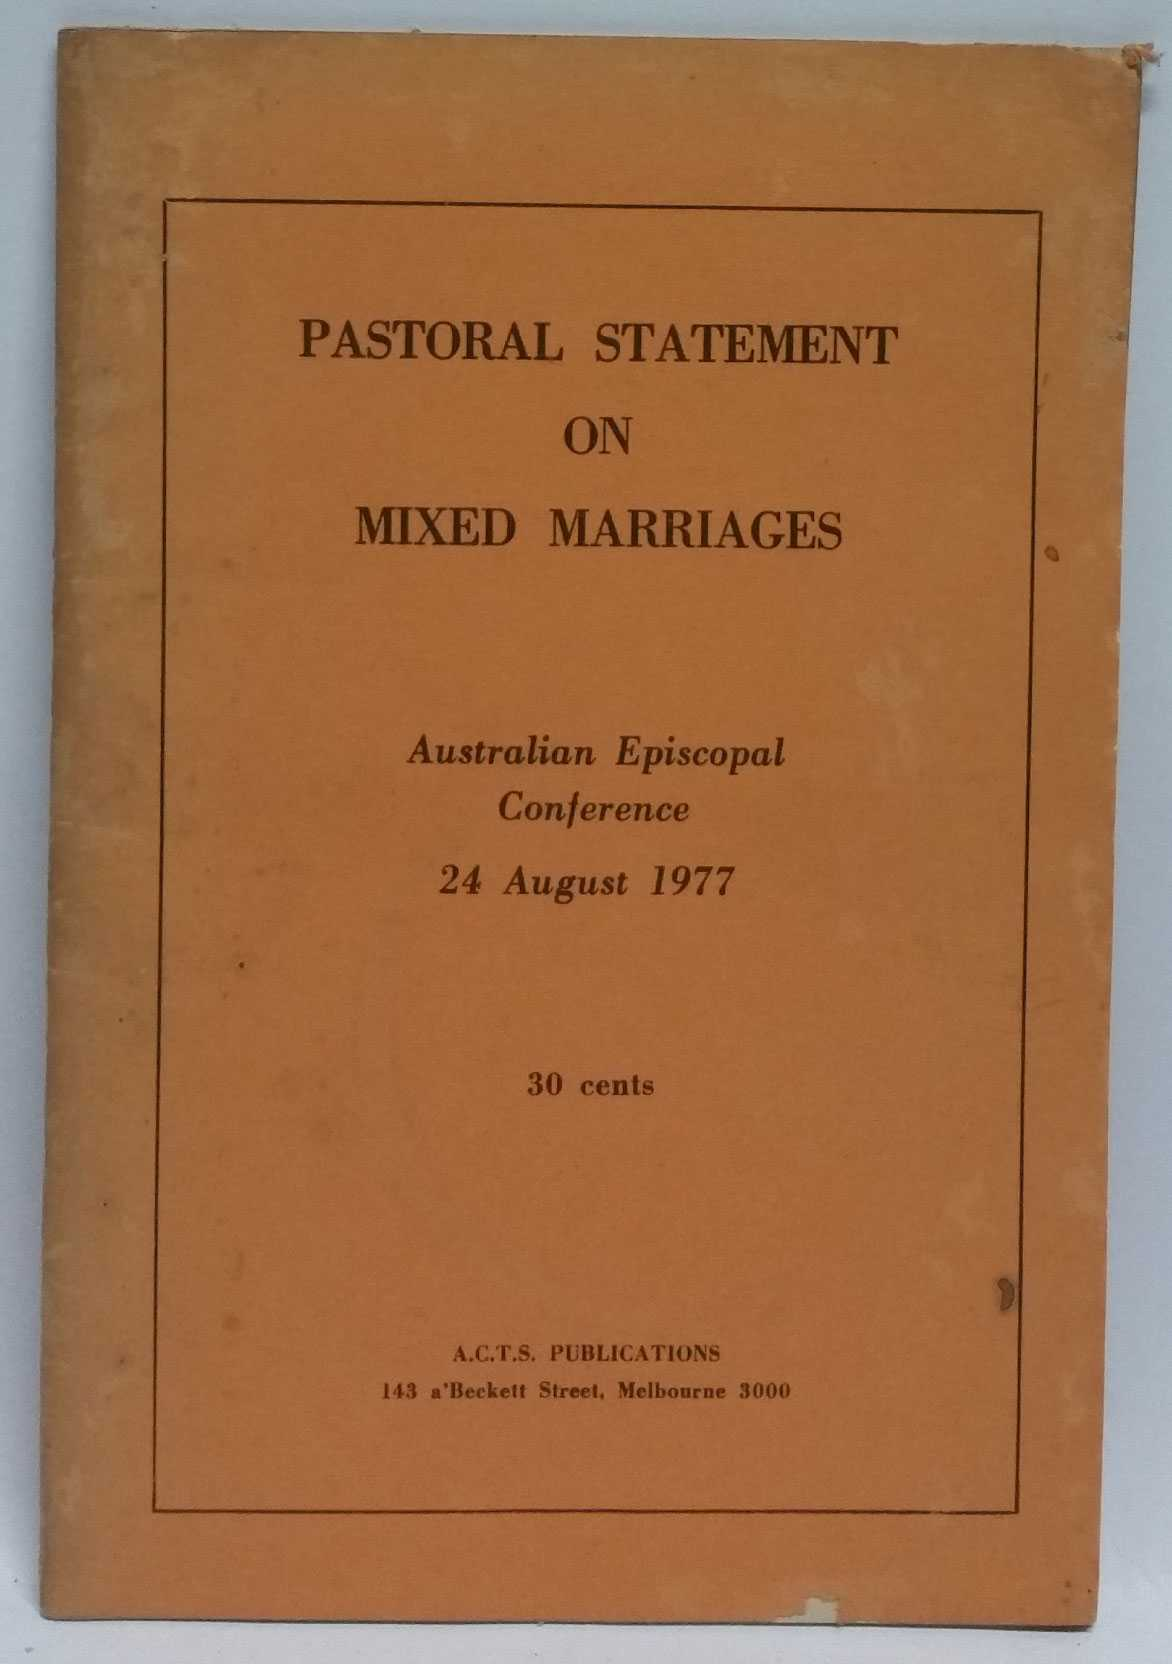 Pastoral Statement on Mixed Marriages, Australian Episcopal Conference